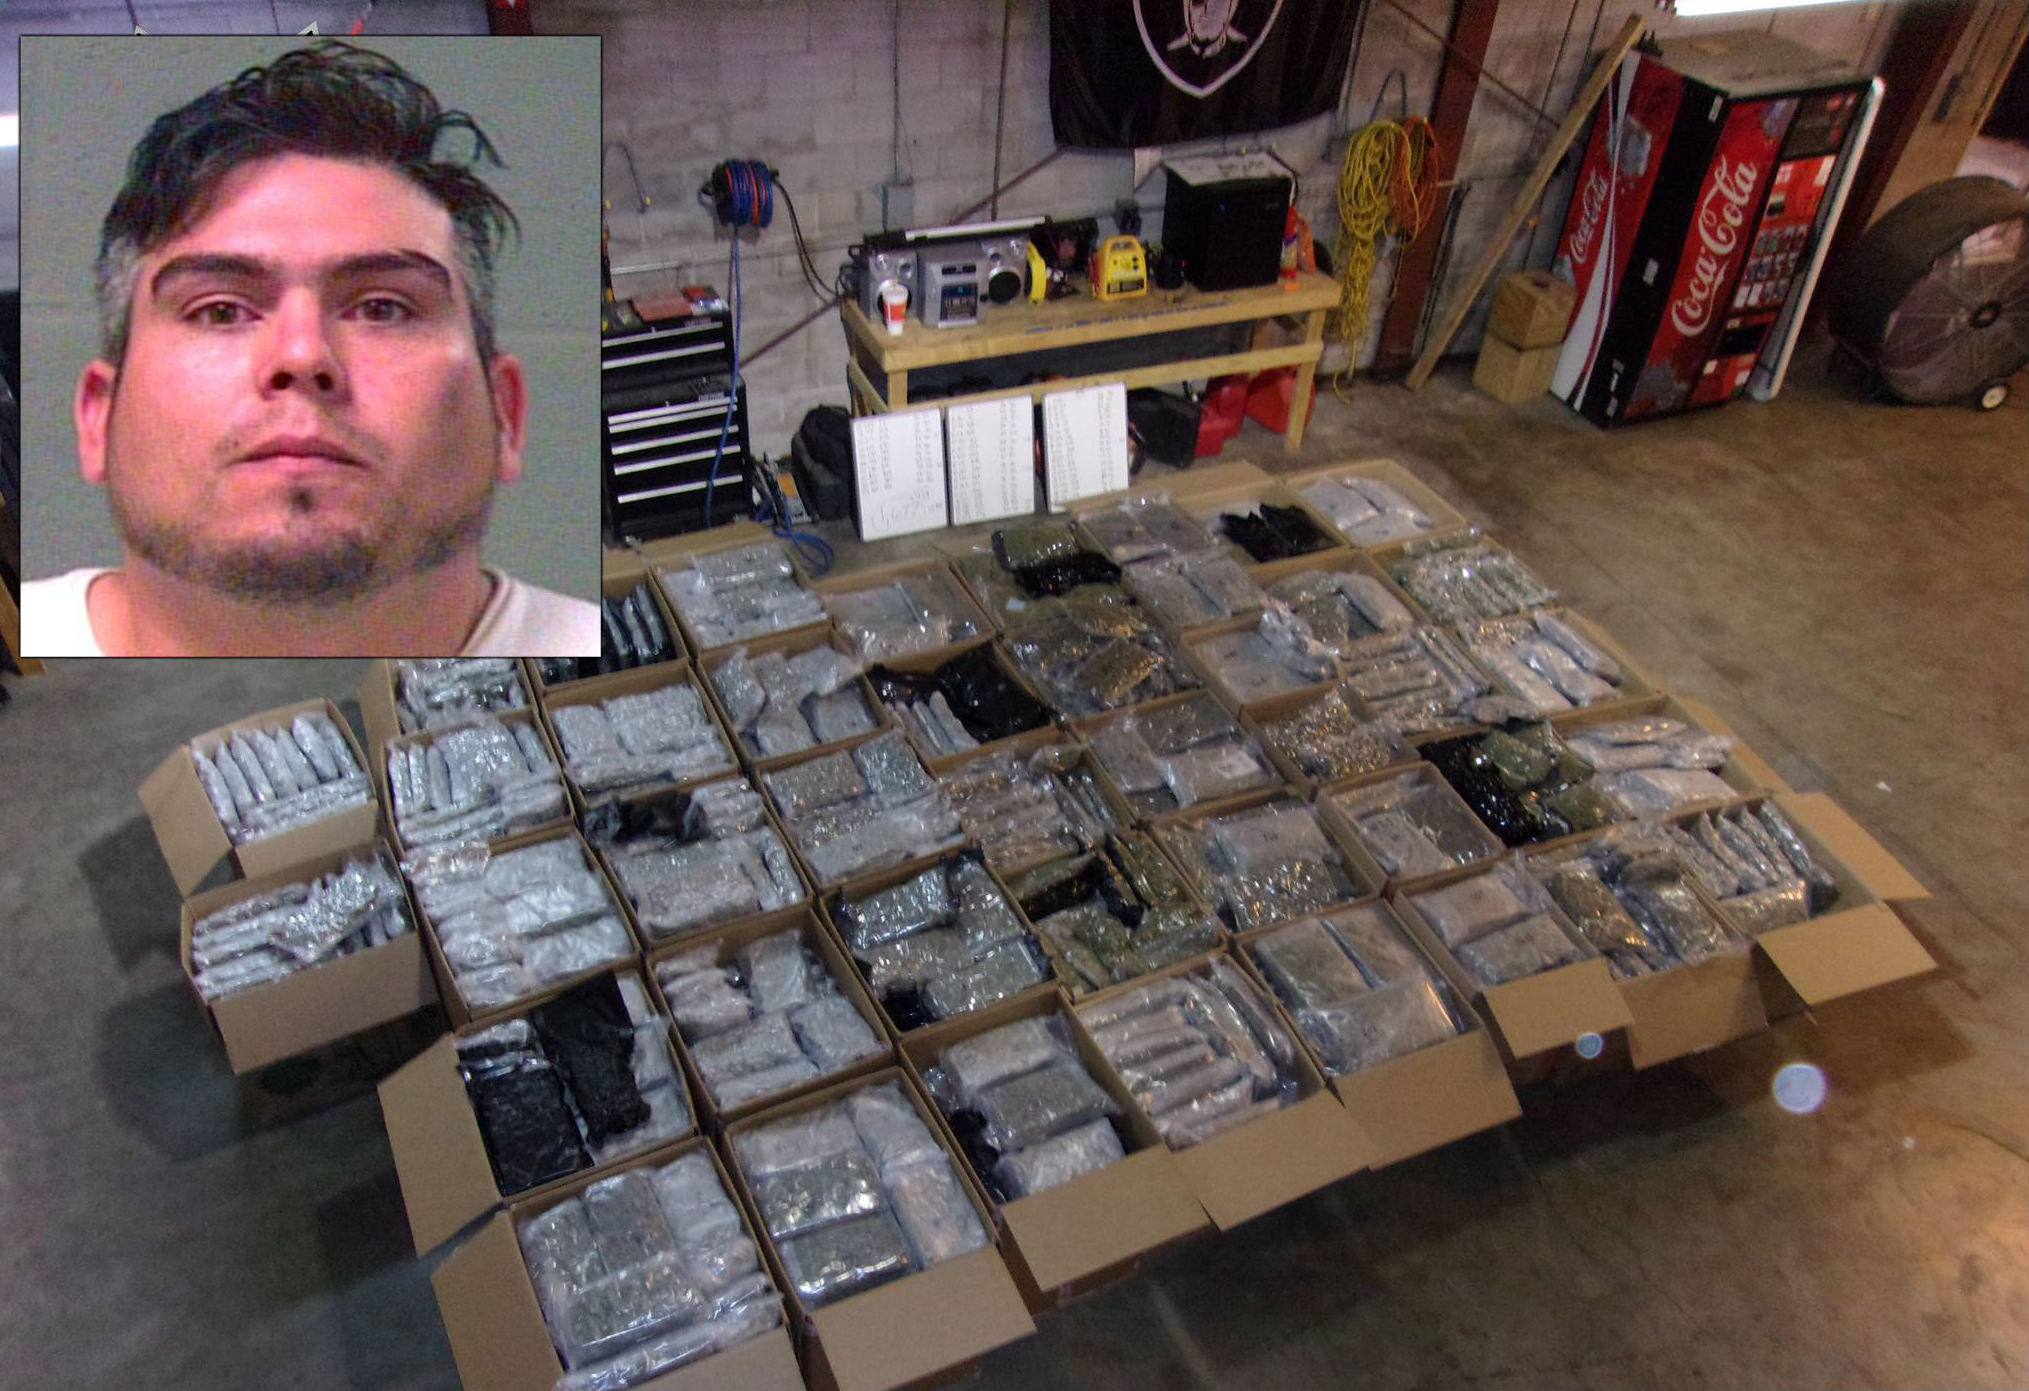 A traffic stop led to the seizure of 1,677 pounds of marijuana in Oklahoma City. (Oklahoma County Sheriff's Office)